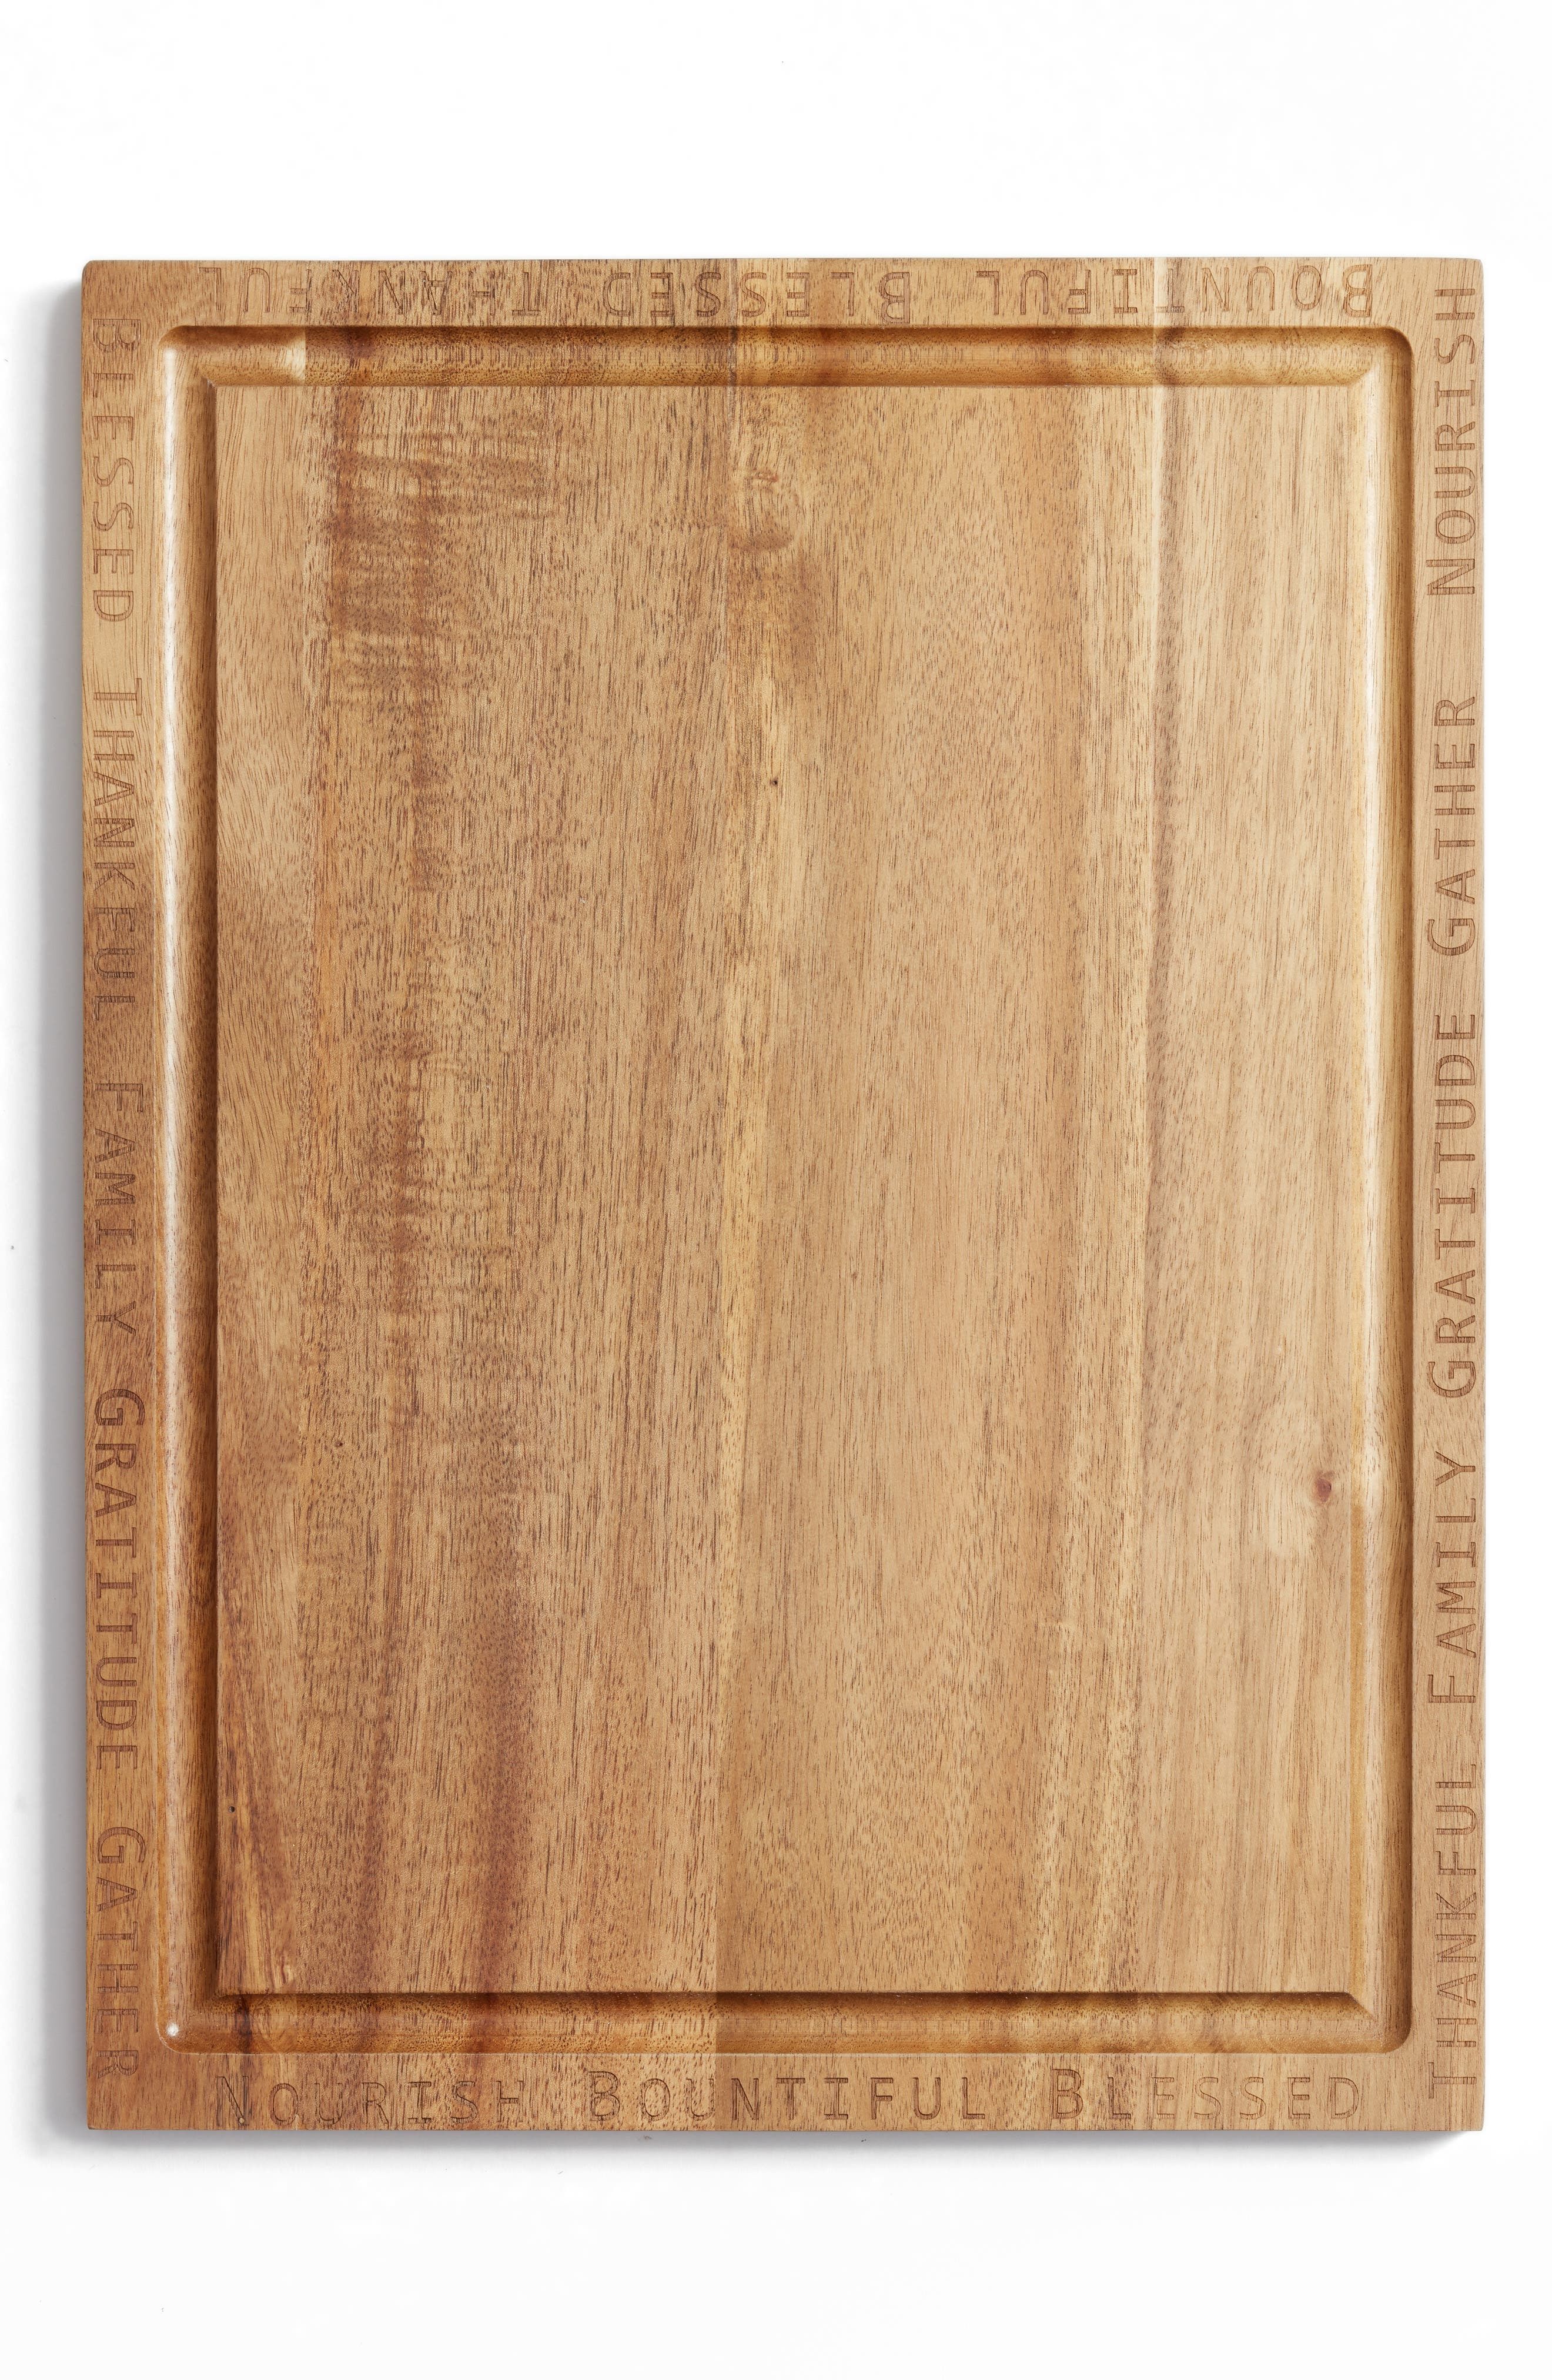 Nordstrom at Home Acacia Wood Cutting Board